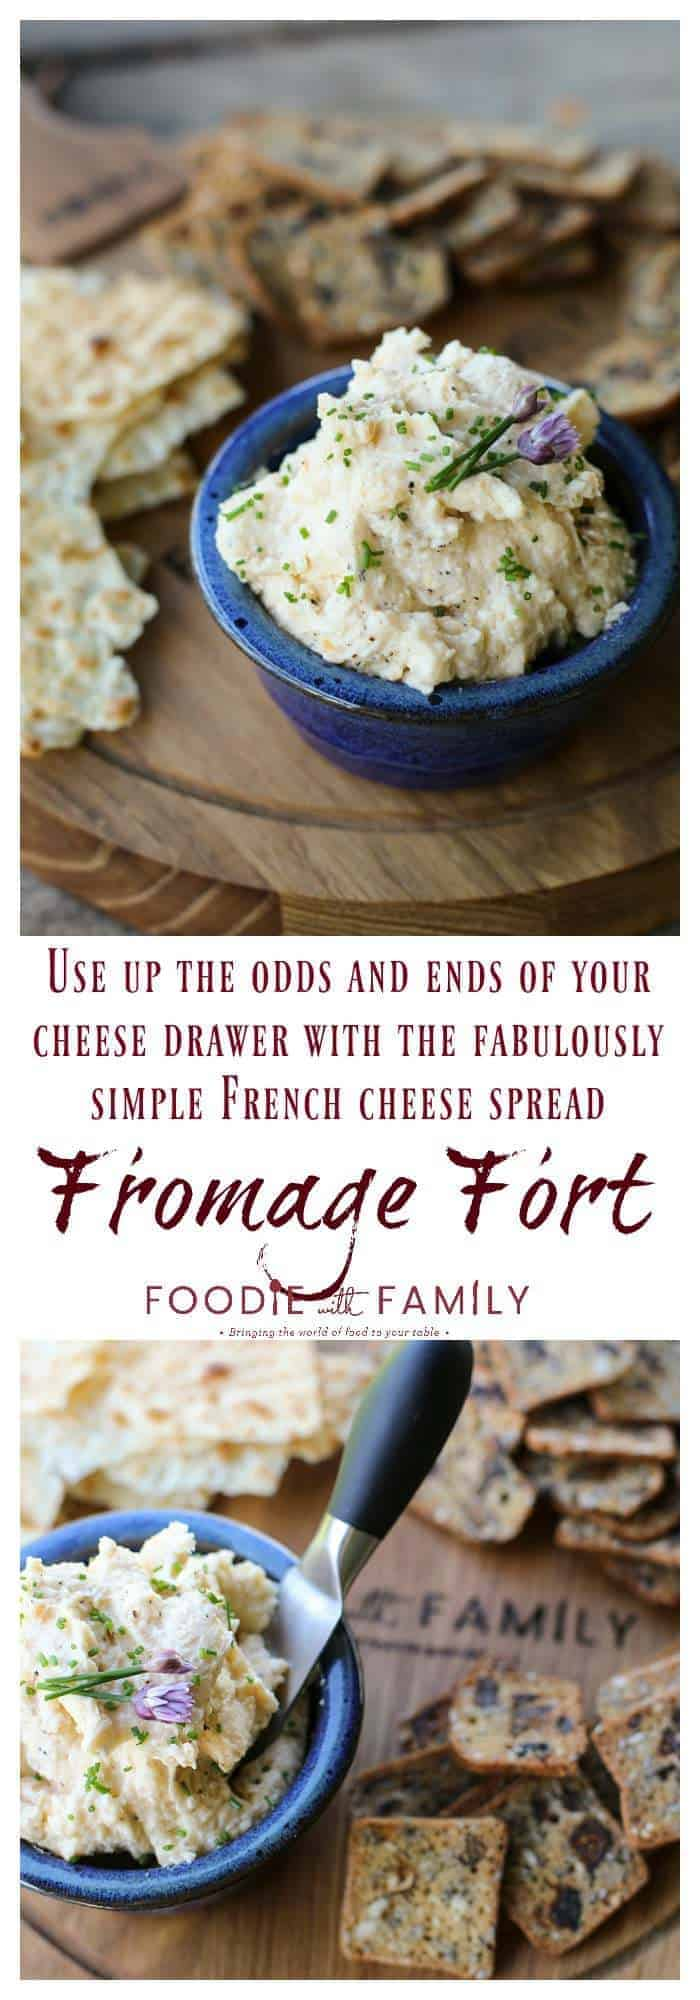 Fromage Fort is a thrifty but fabulous French solution to odds and ends of cheese in your refrigerator. It's as easy as throwing a bunch of grated cheese, a little garlic, and a splash of white wine in a food processor!